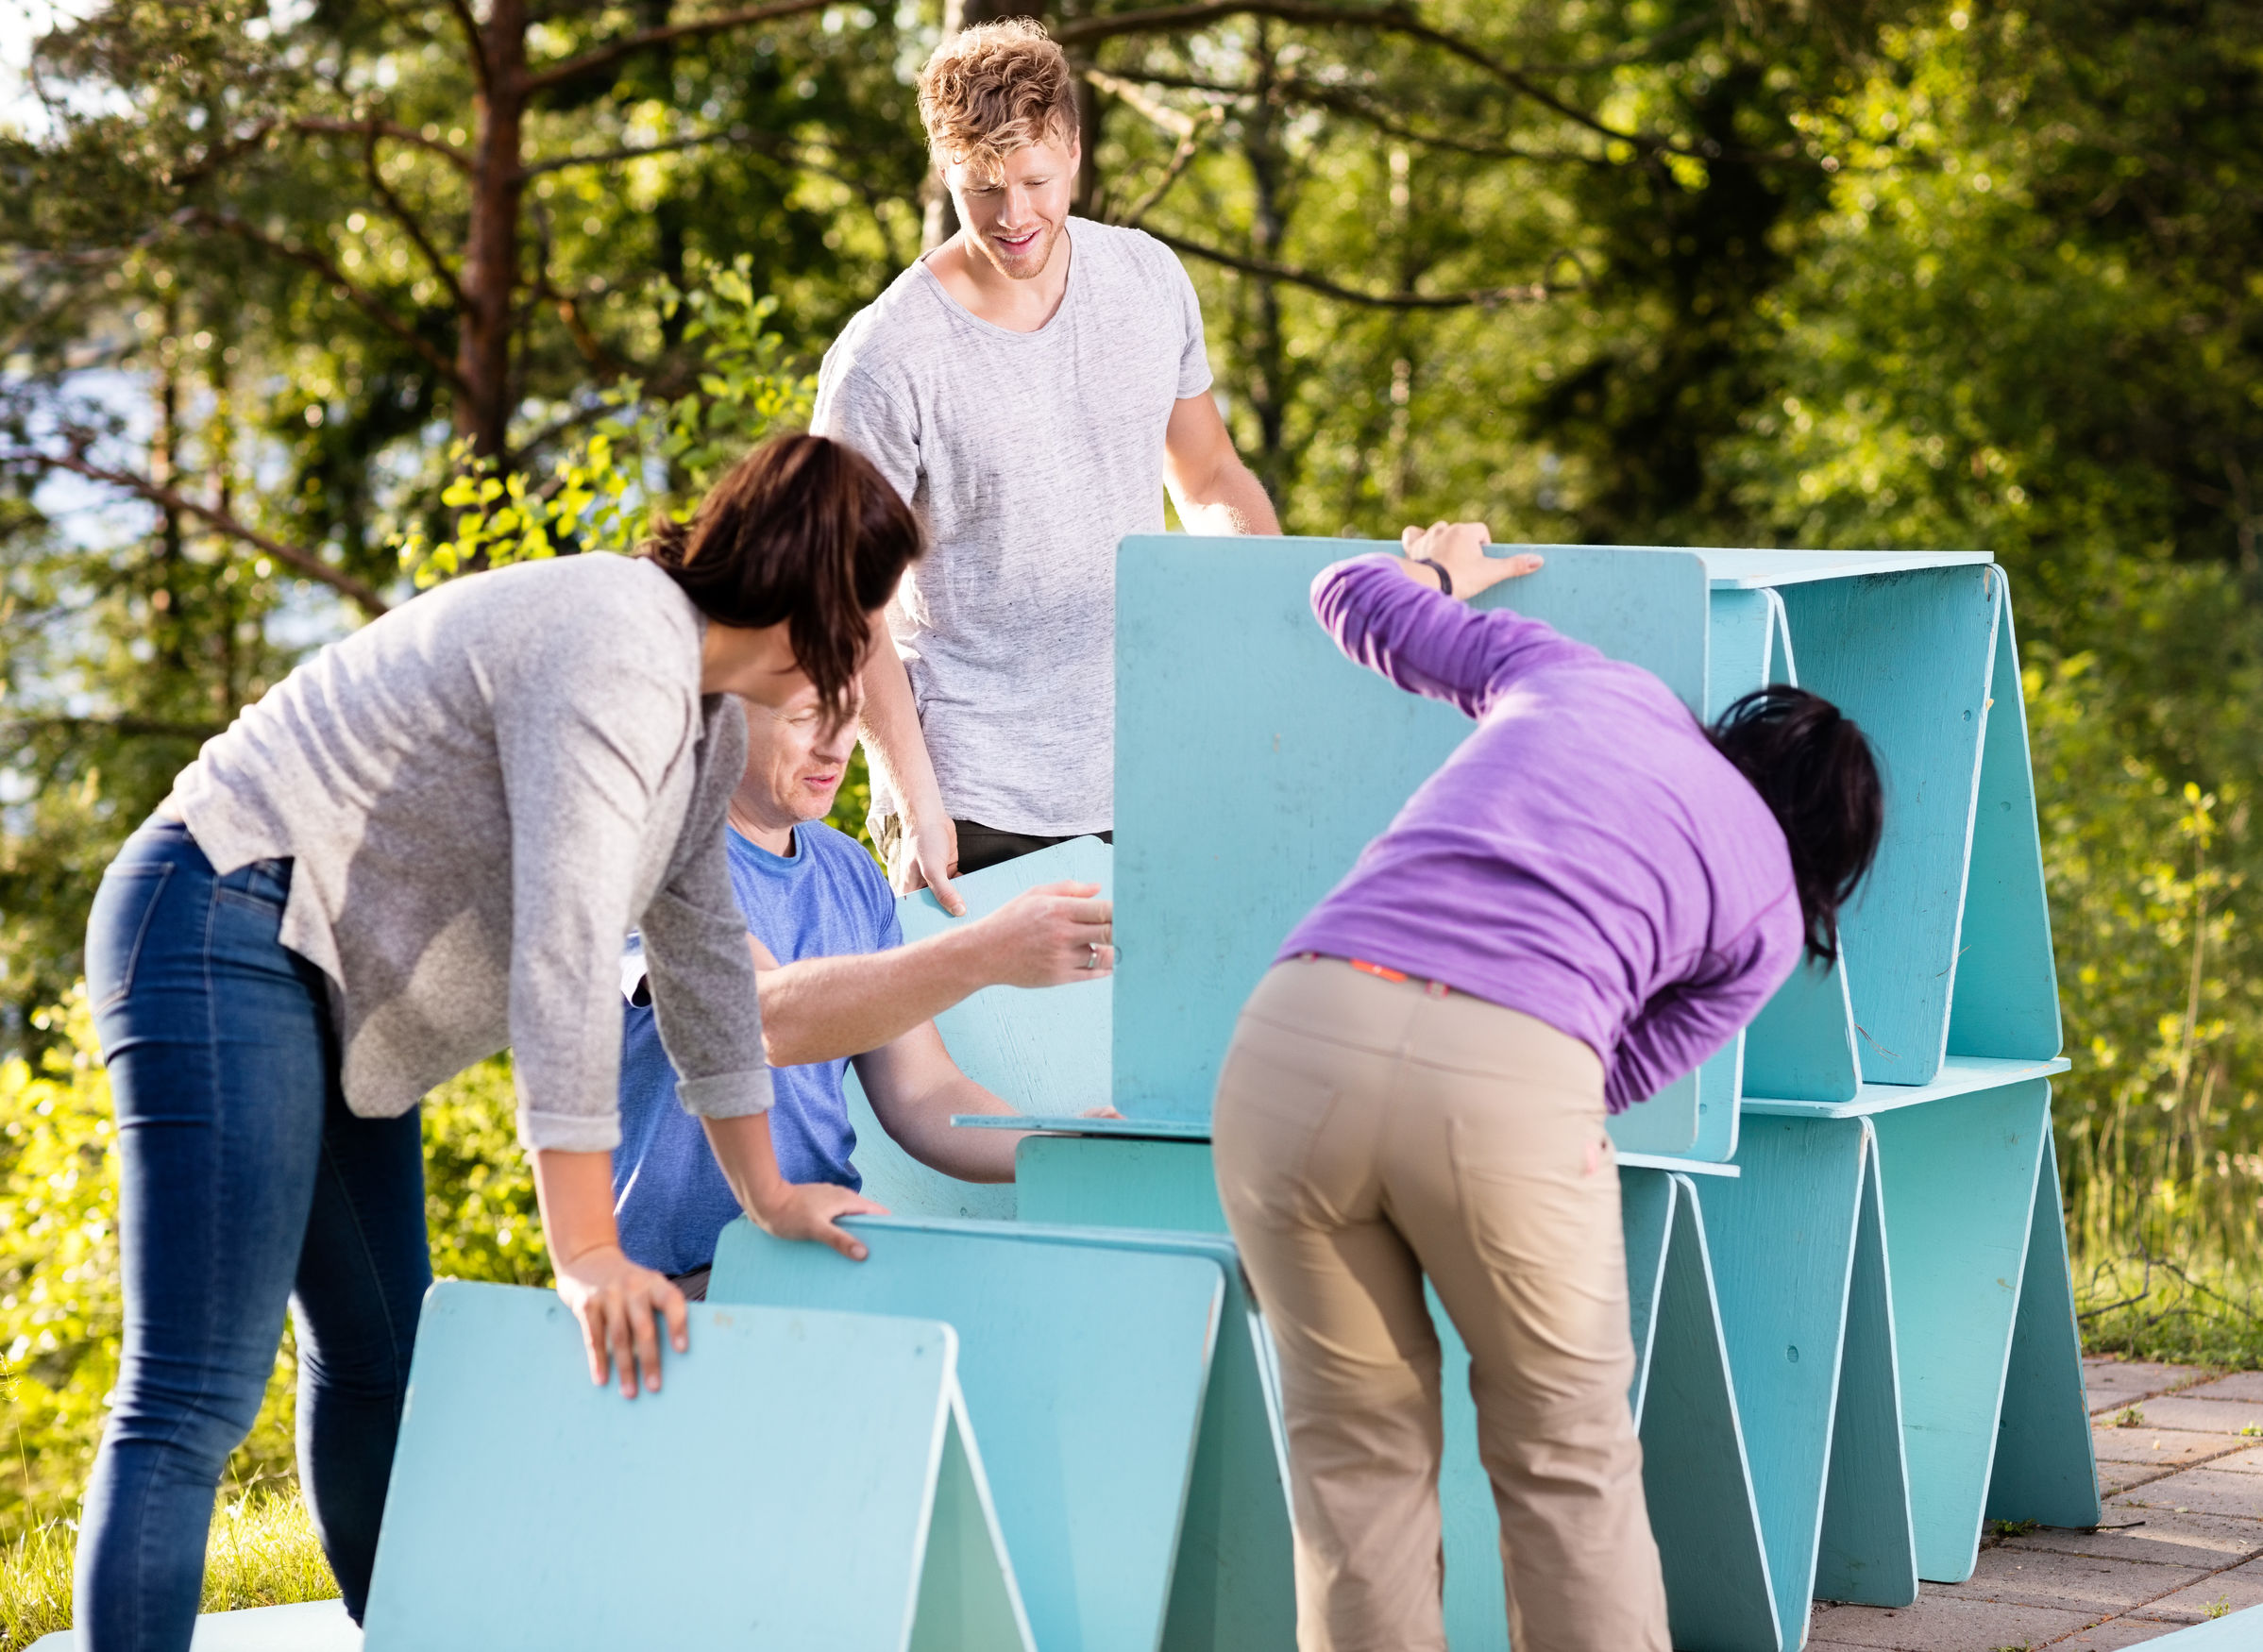 4 Benefits of Corporate Team Building Activities for Your Employees